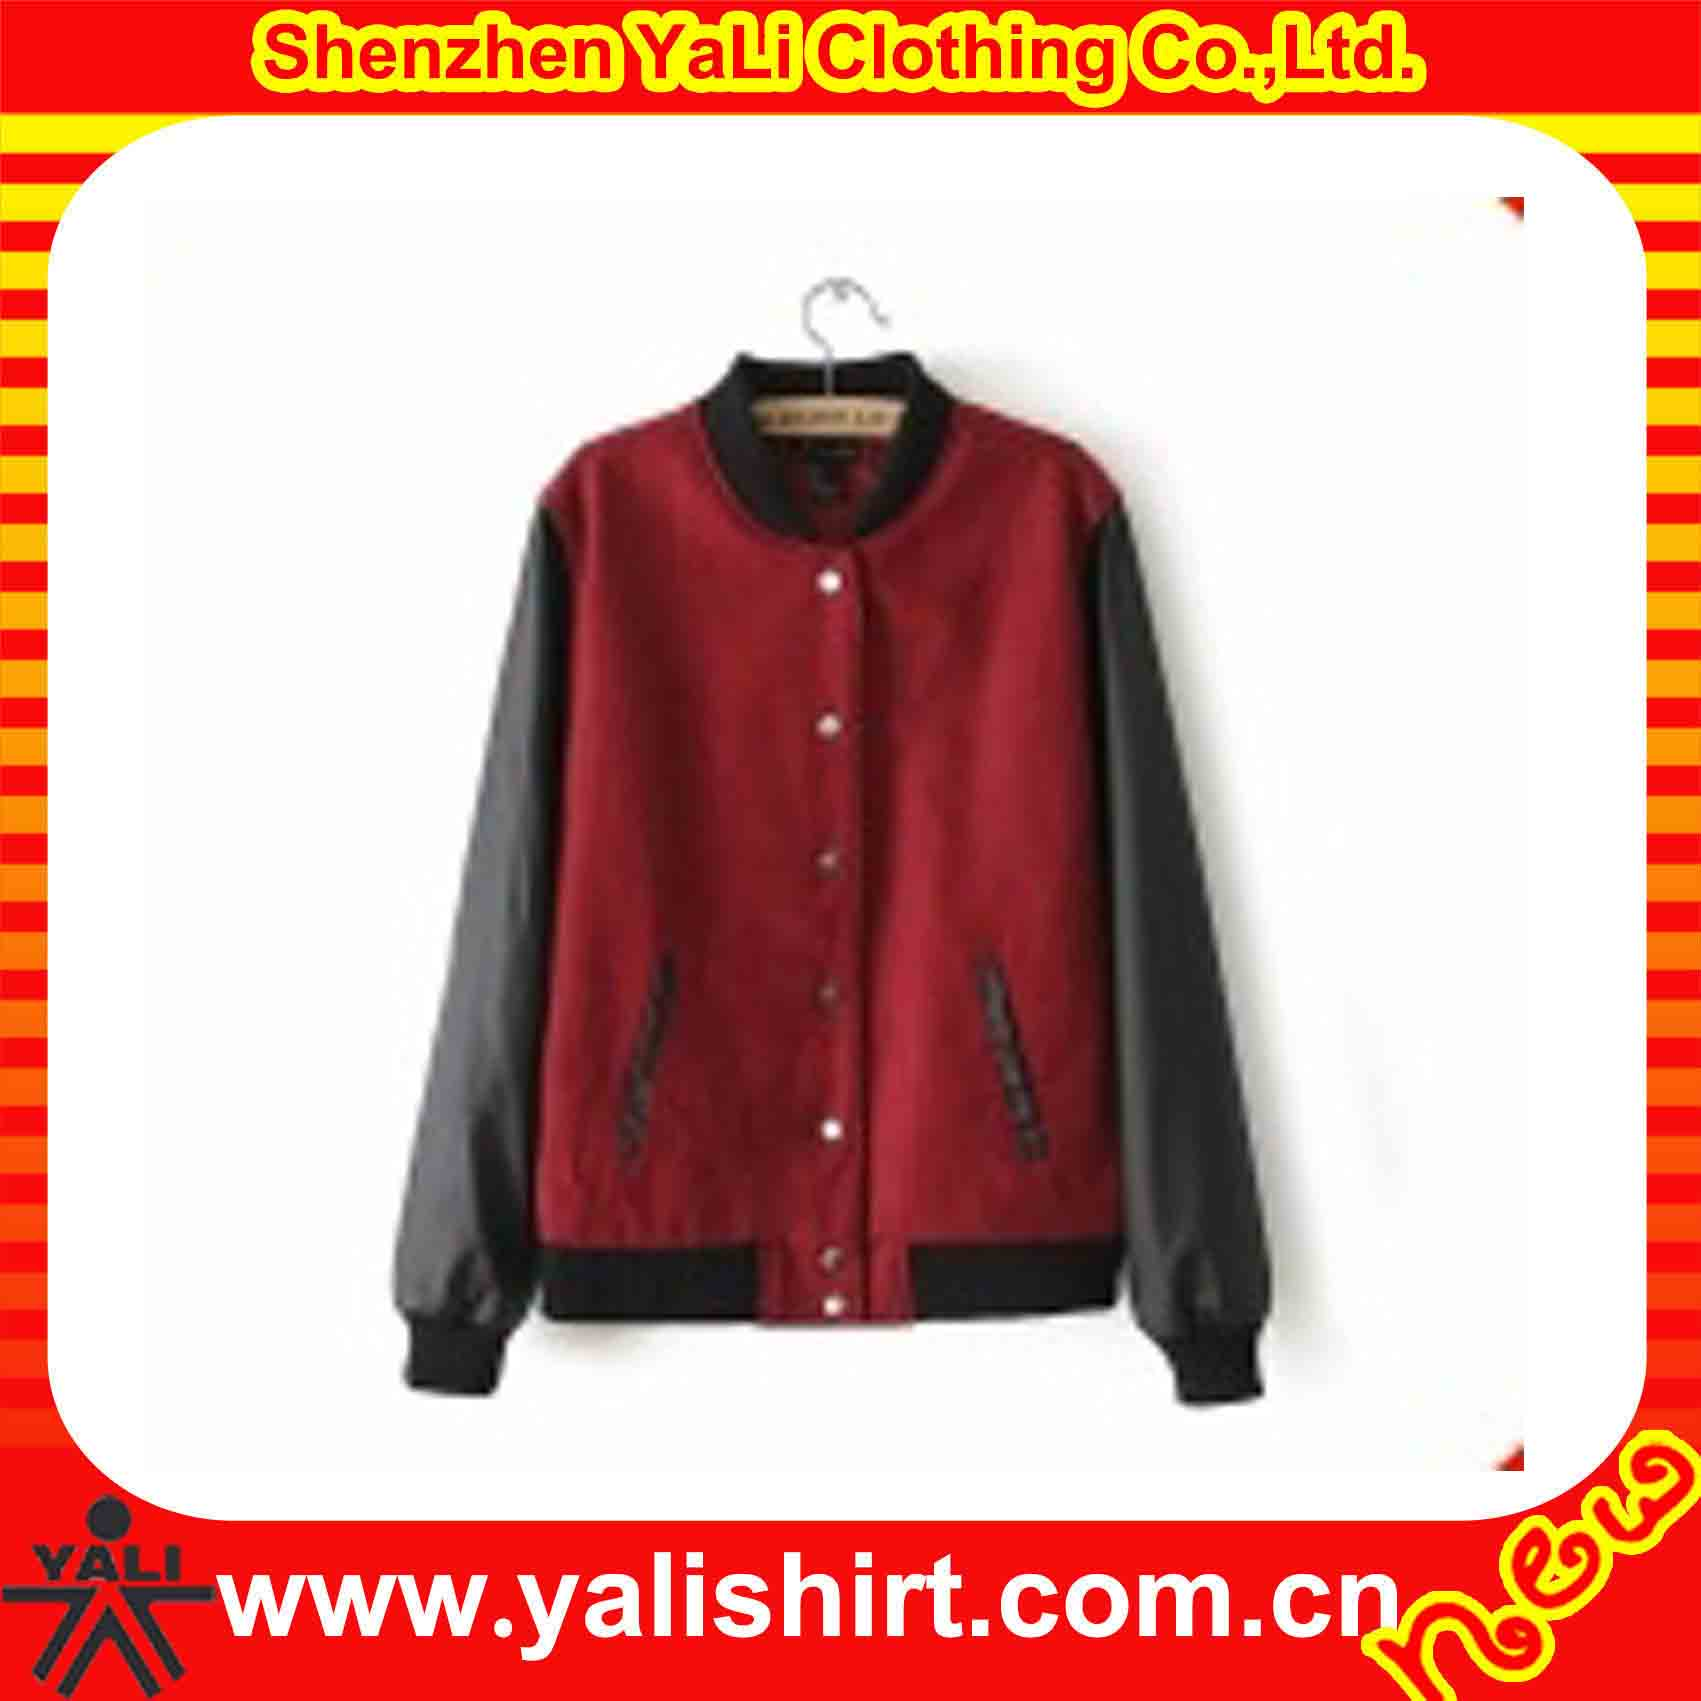 Hot selling fashion customize good quality leather sleeve jacket for men